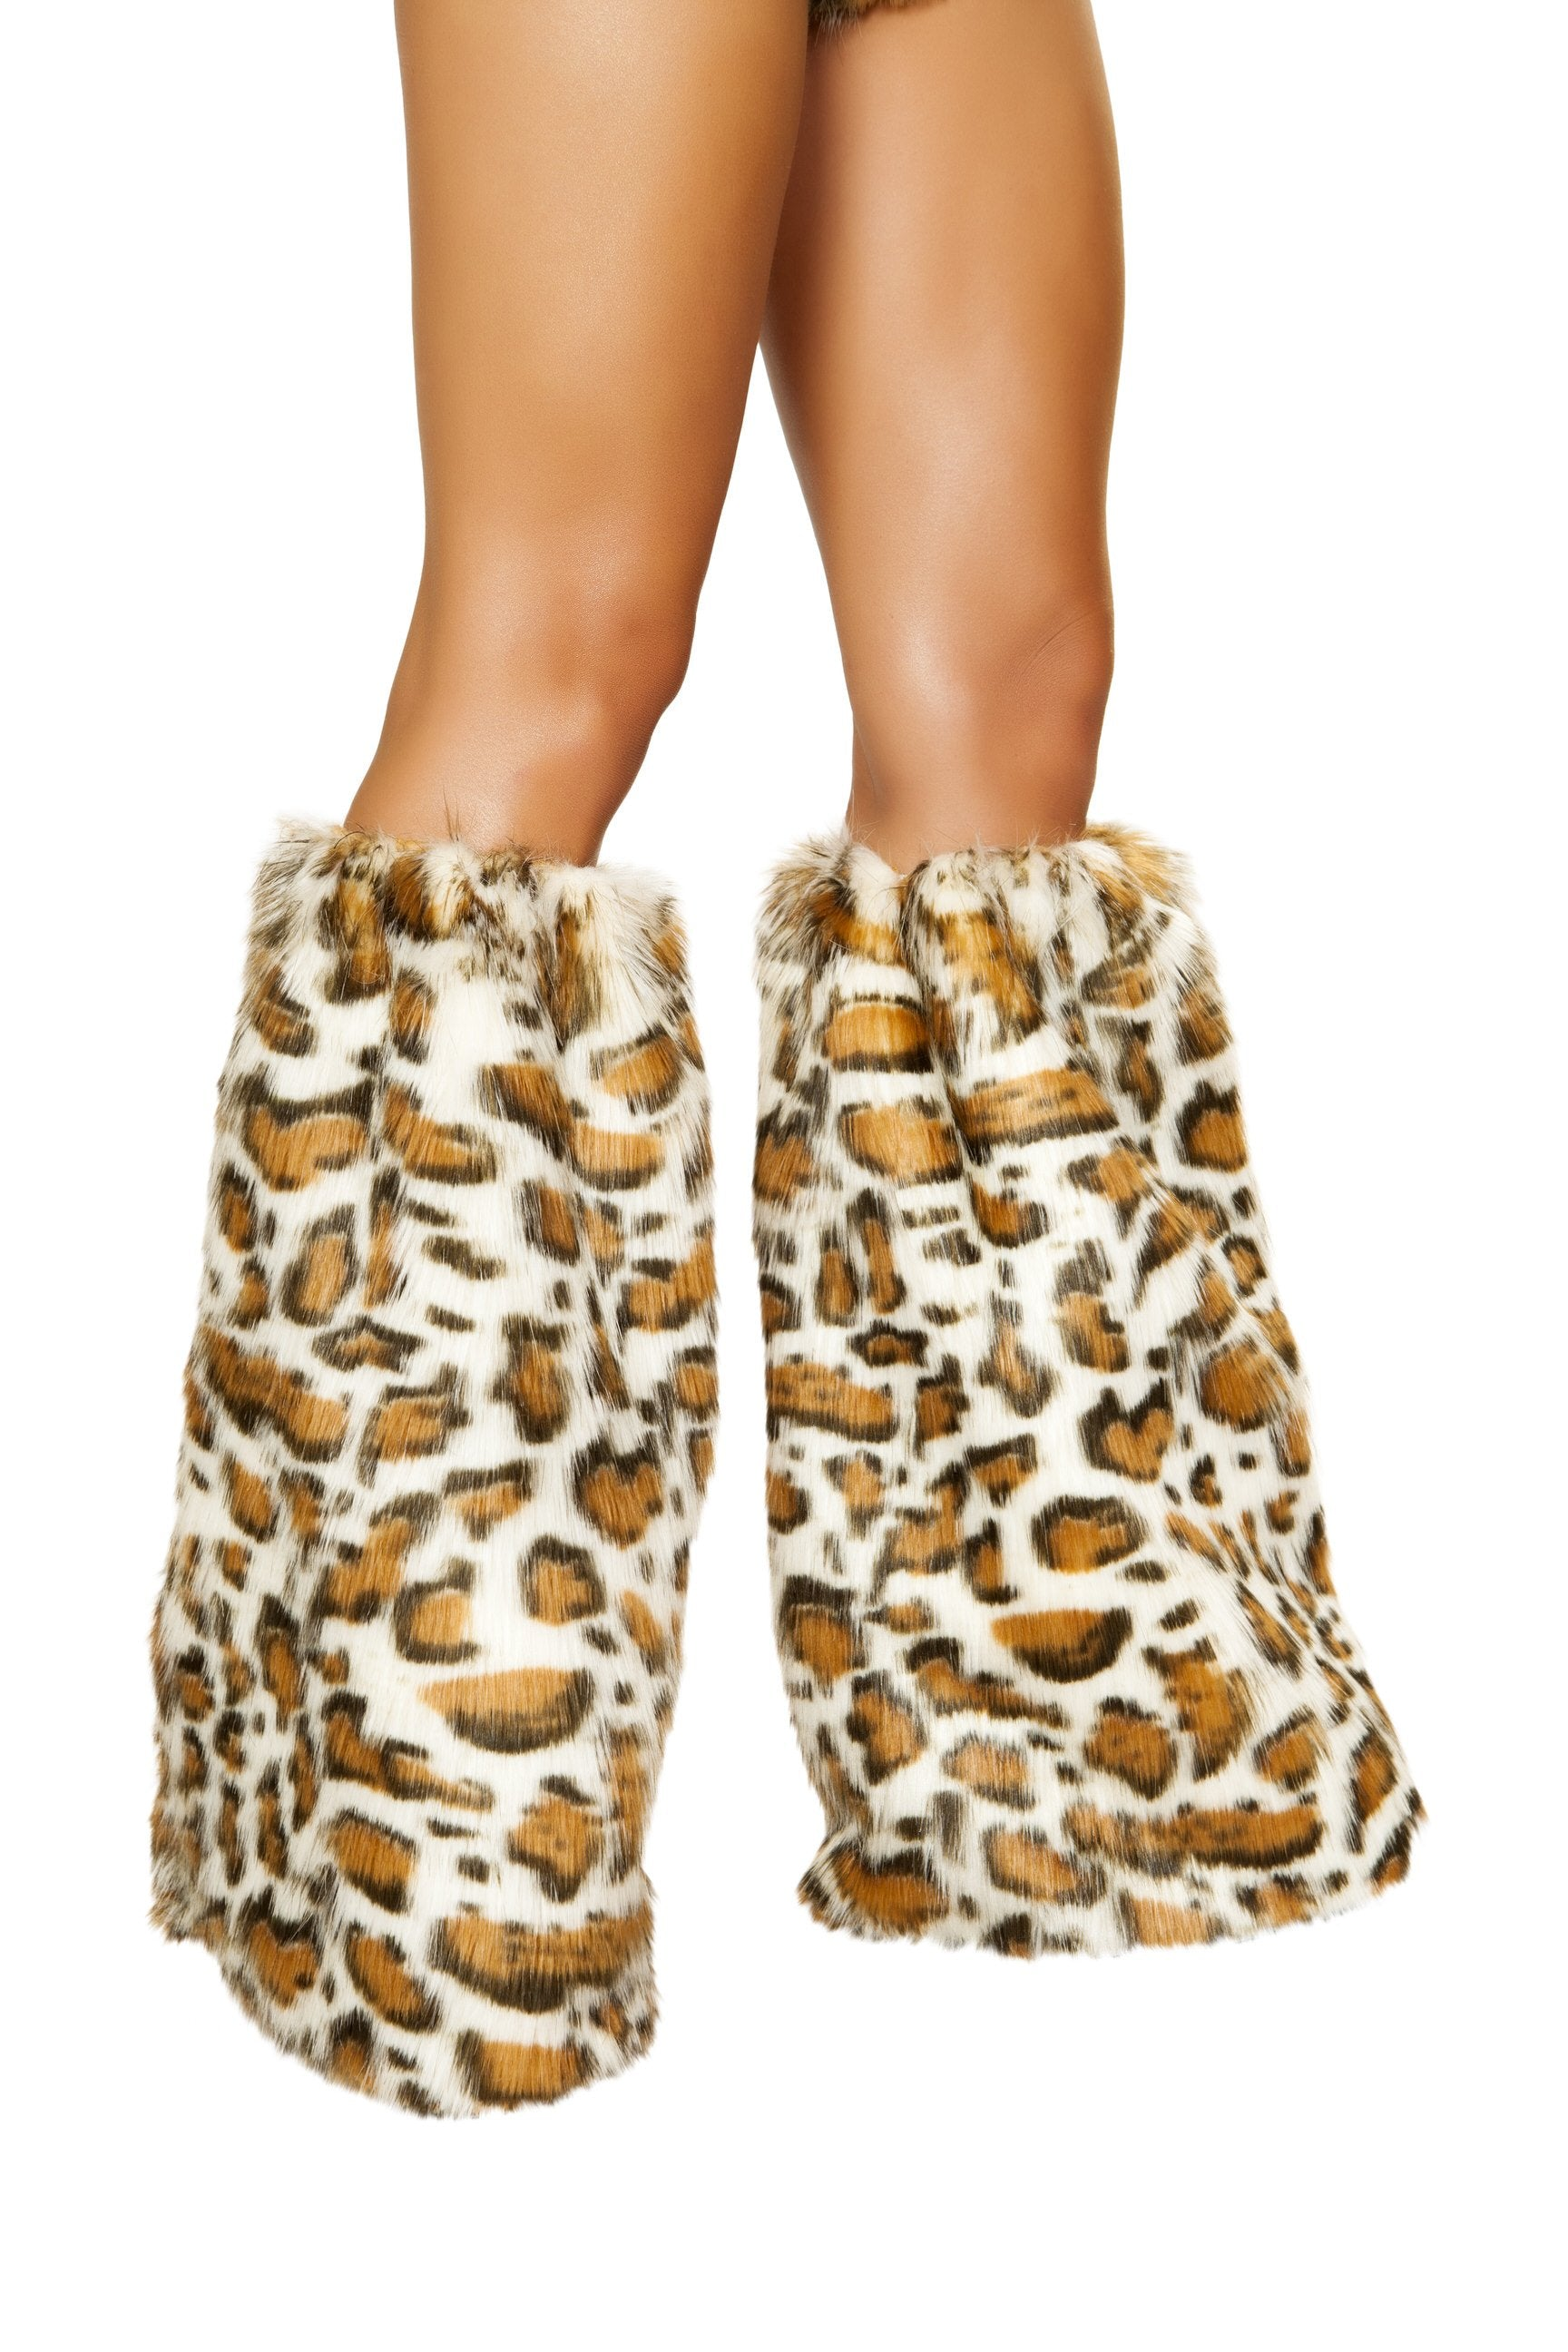 4890 - Pair of Leopard Leg Warmers